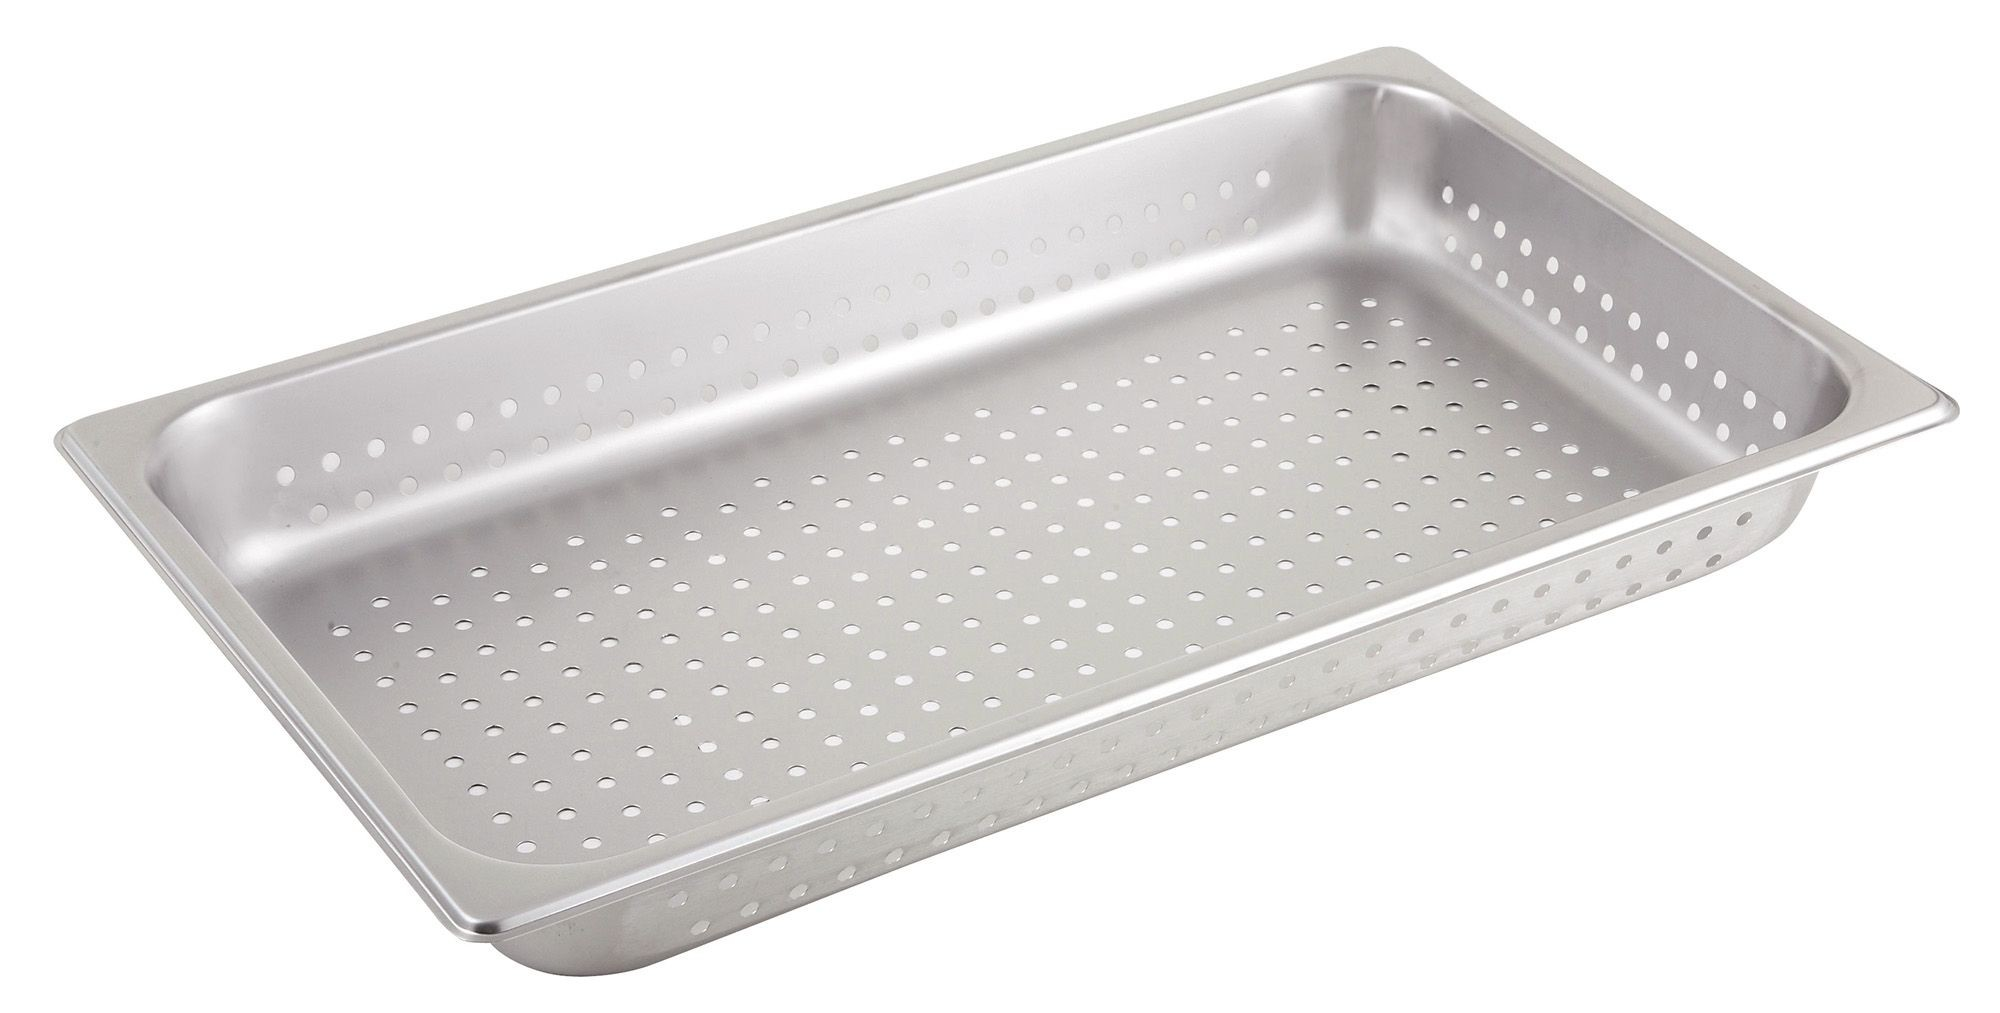 "Winco spfp2 Stainless Steel Perforated Full-Size Steam Table Pan 2-1/2"" Deep"